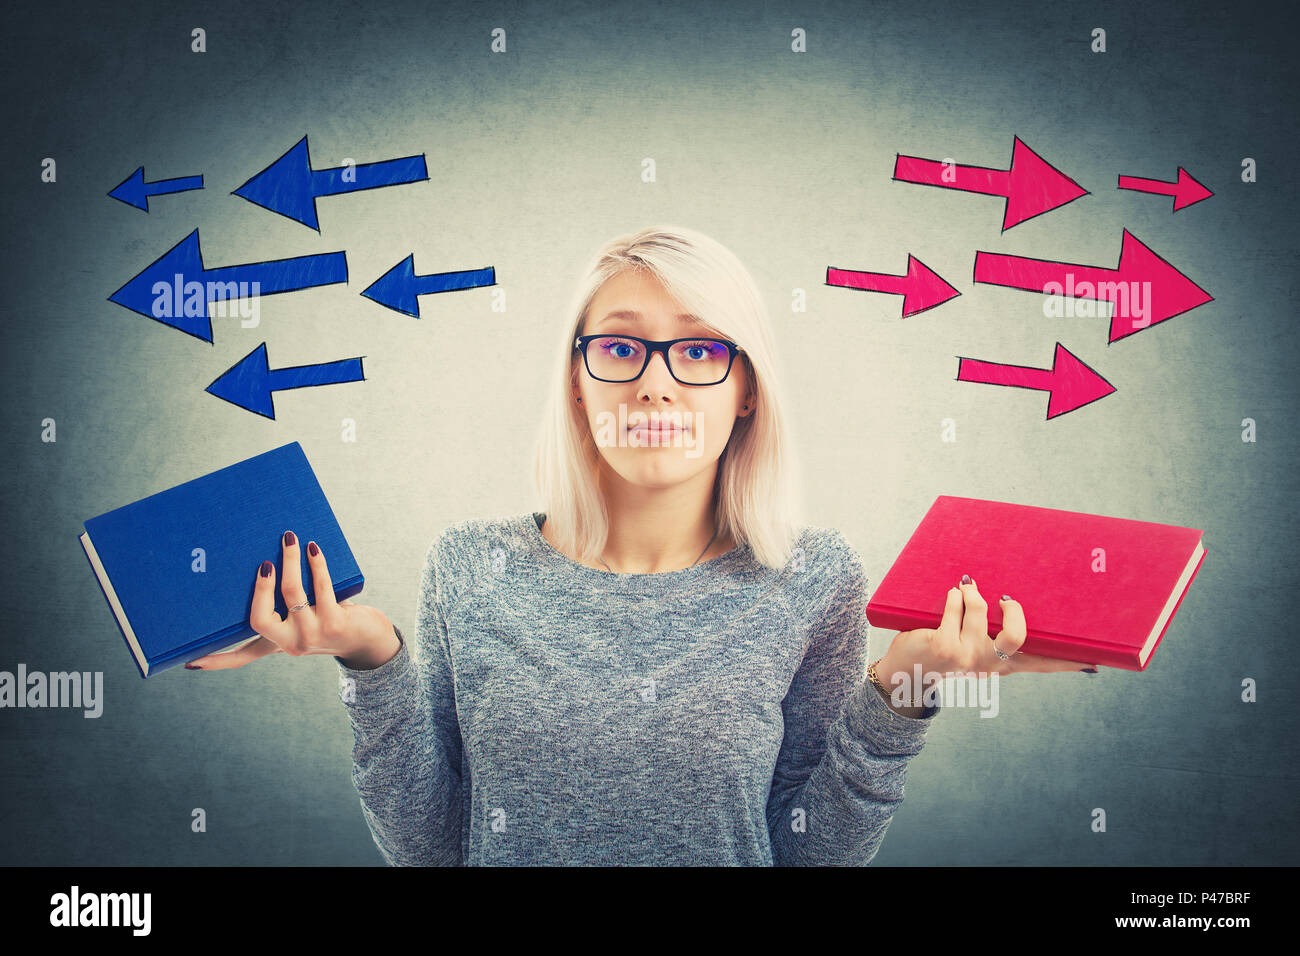 Confused young woman choosing between two books, red and blue, with arrows poinded to the left and right side. Difficult decision, education concept,  - Stock Image